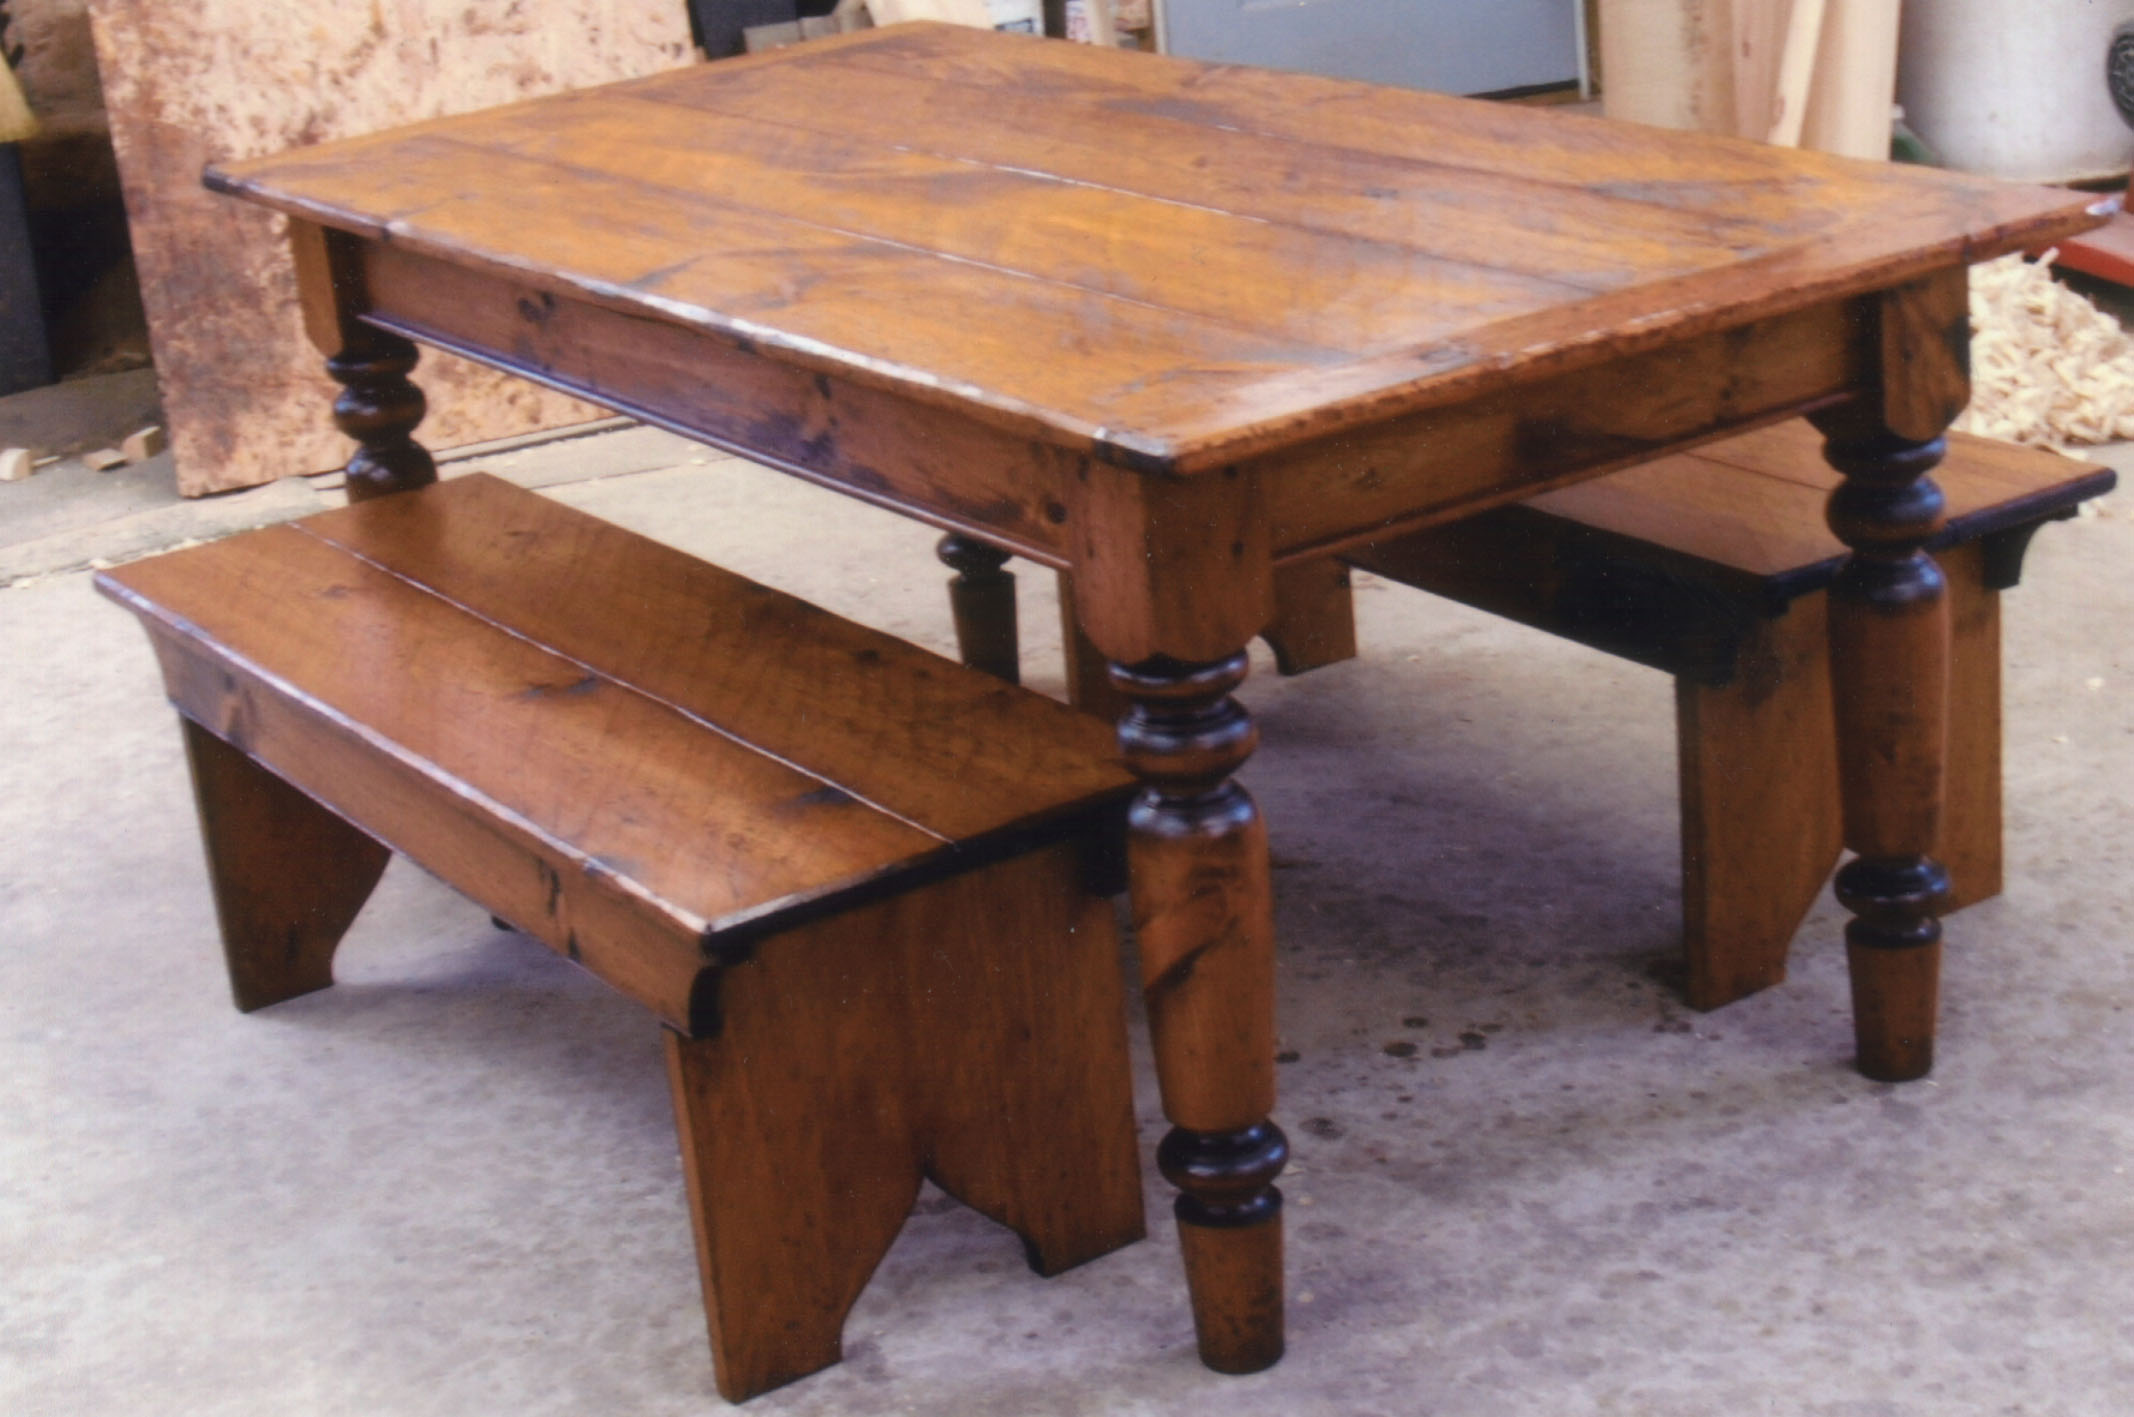 Kitchen table with benches | Kitchen ideas